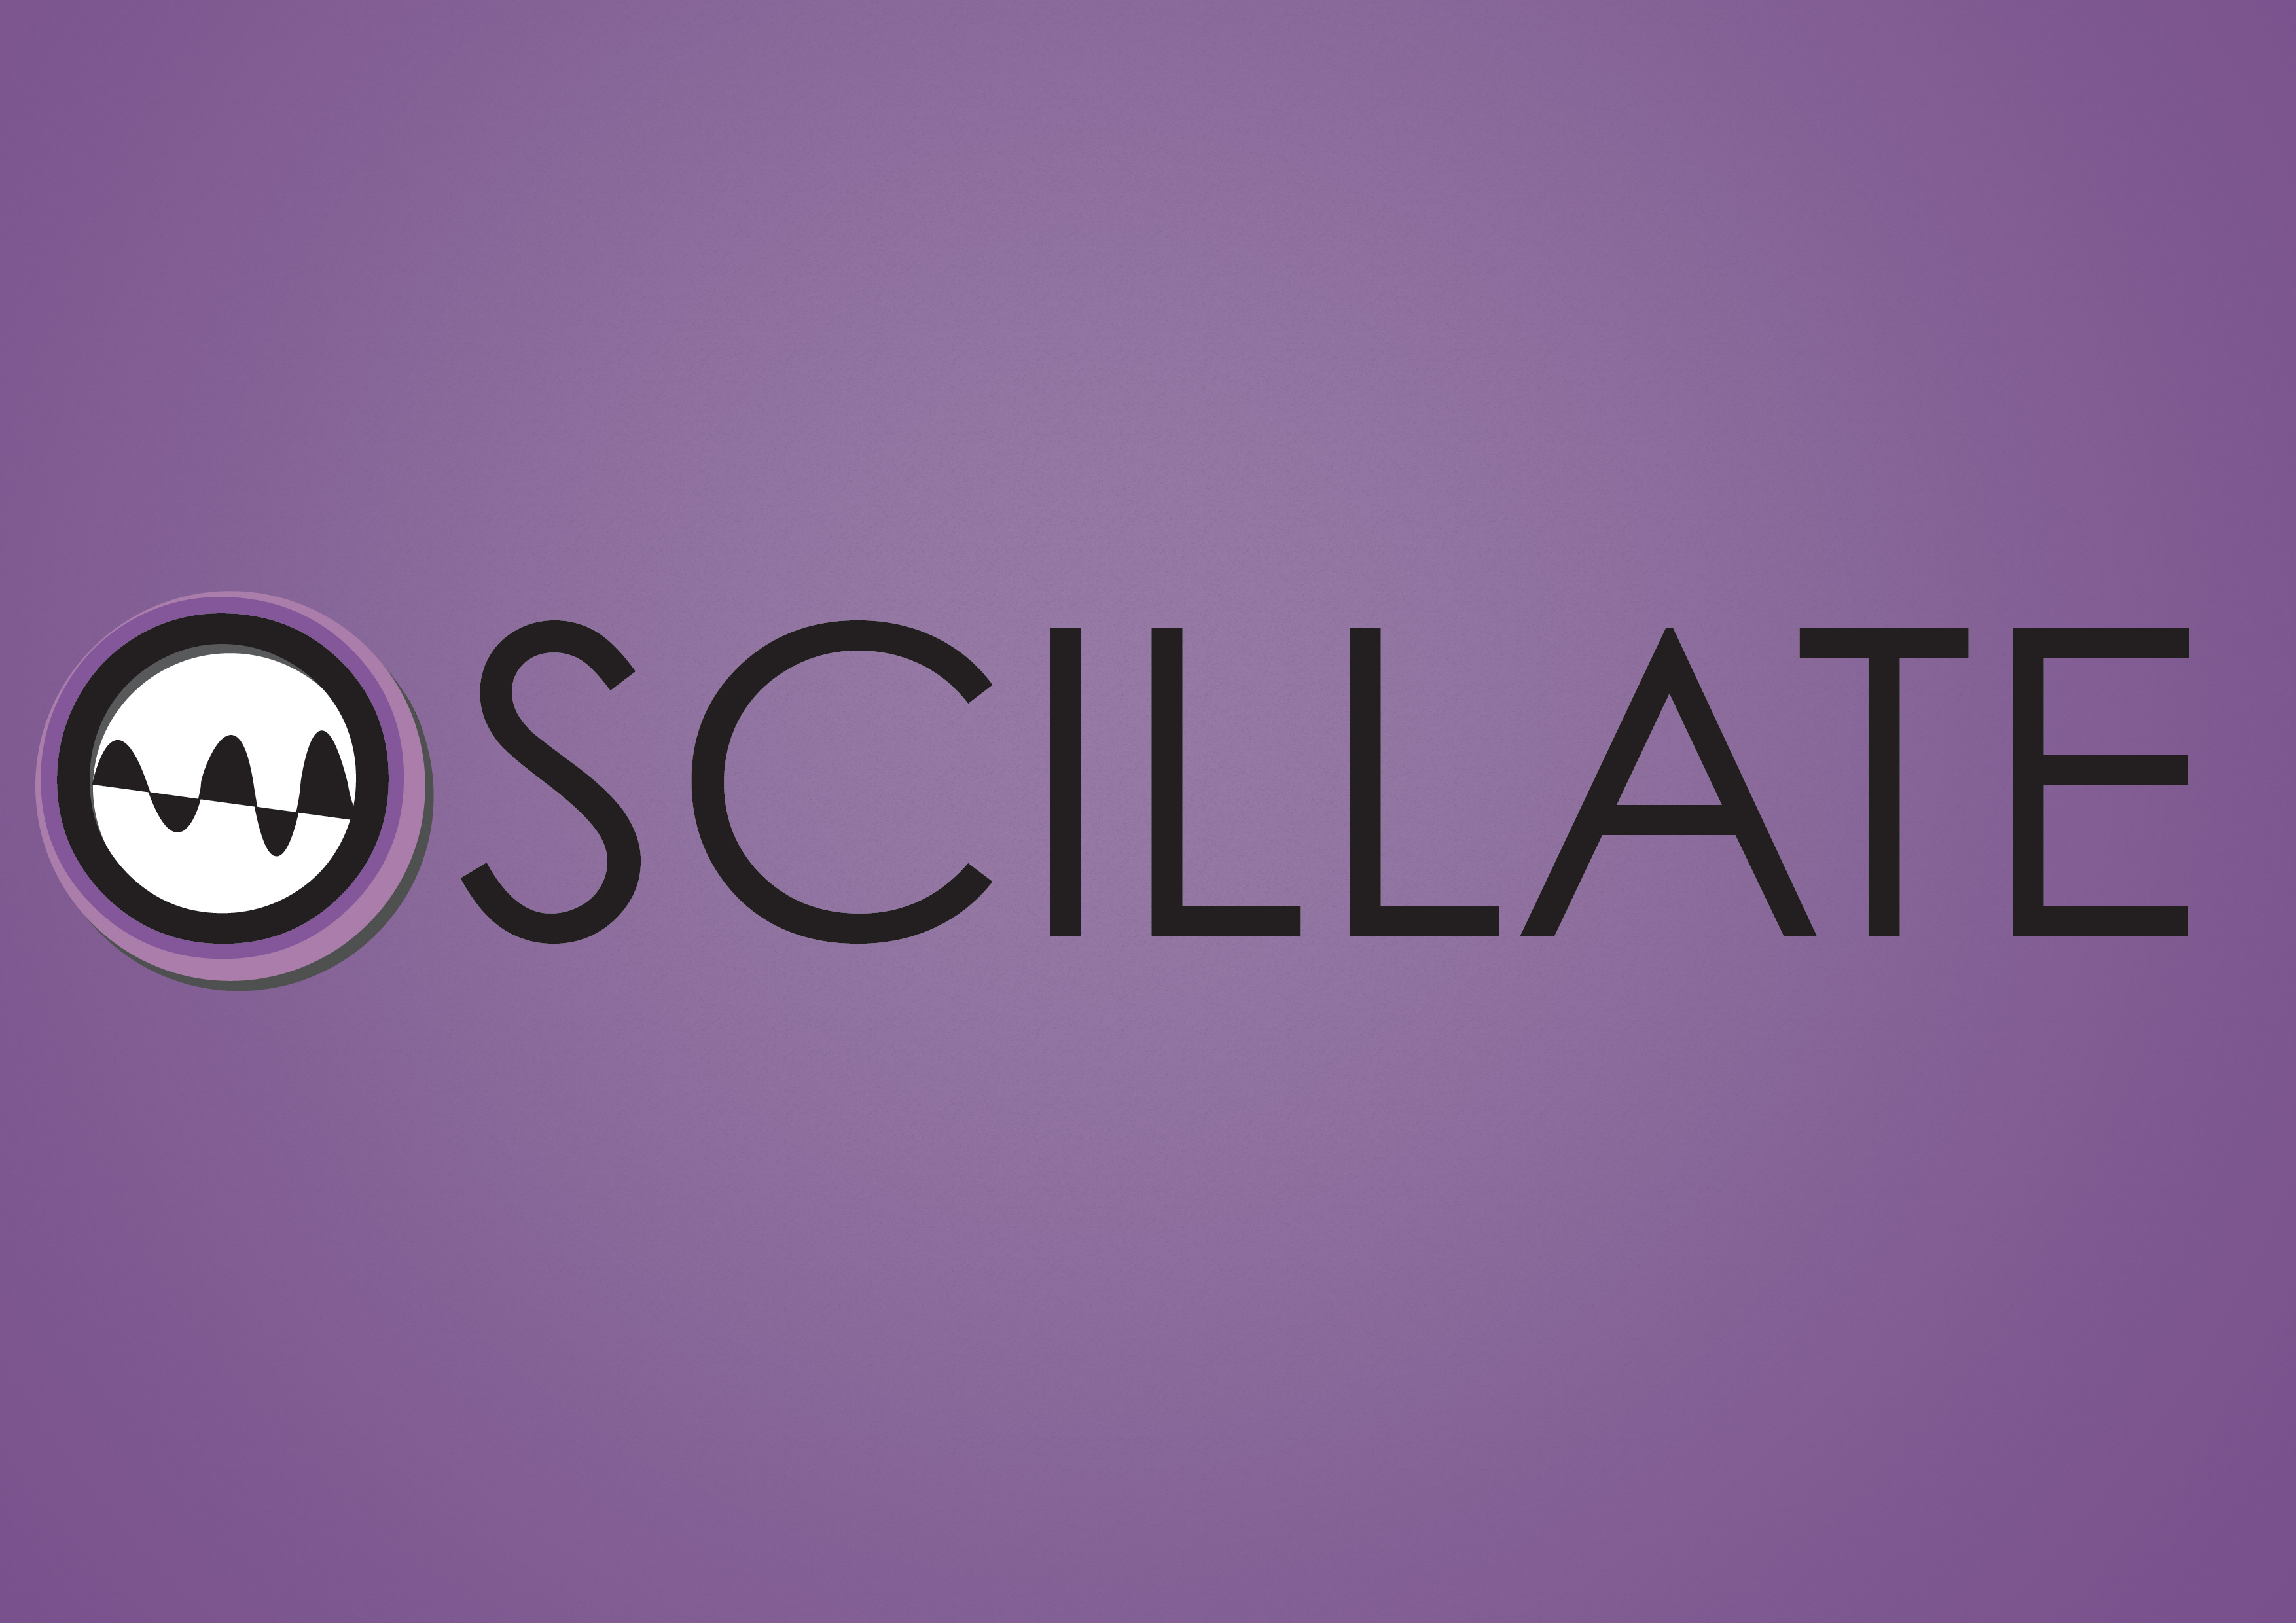 Word and Image Expression - Oscillate